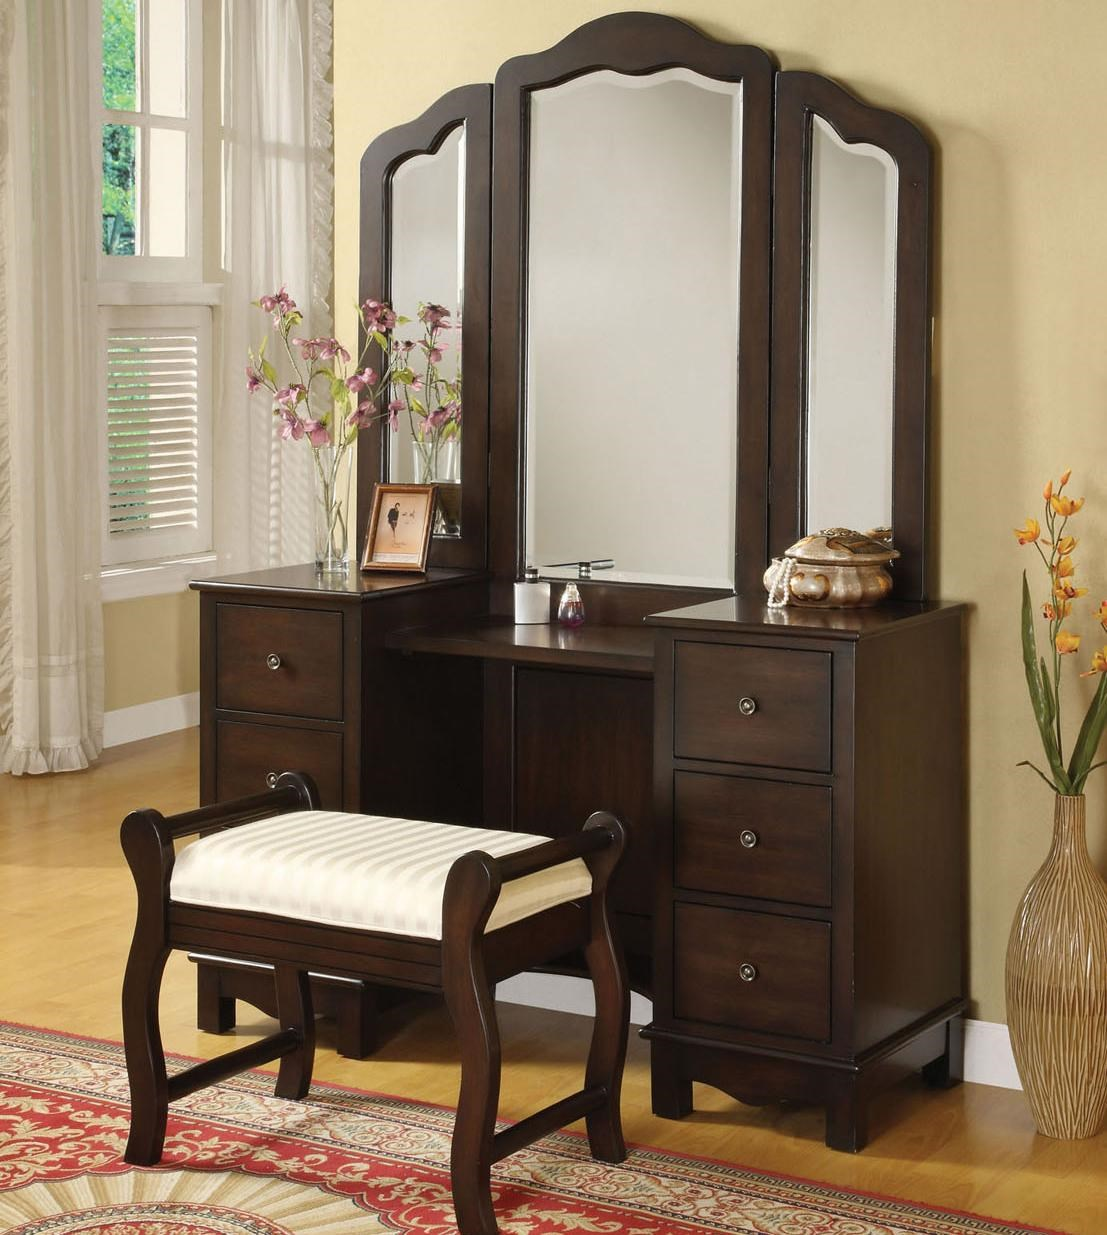 Incroyable Acme Furniture Annapolis Vanity Set With Upholstered Stool